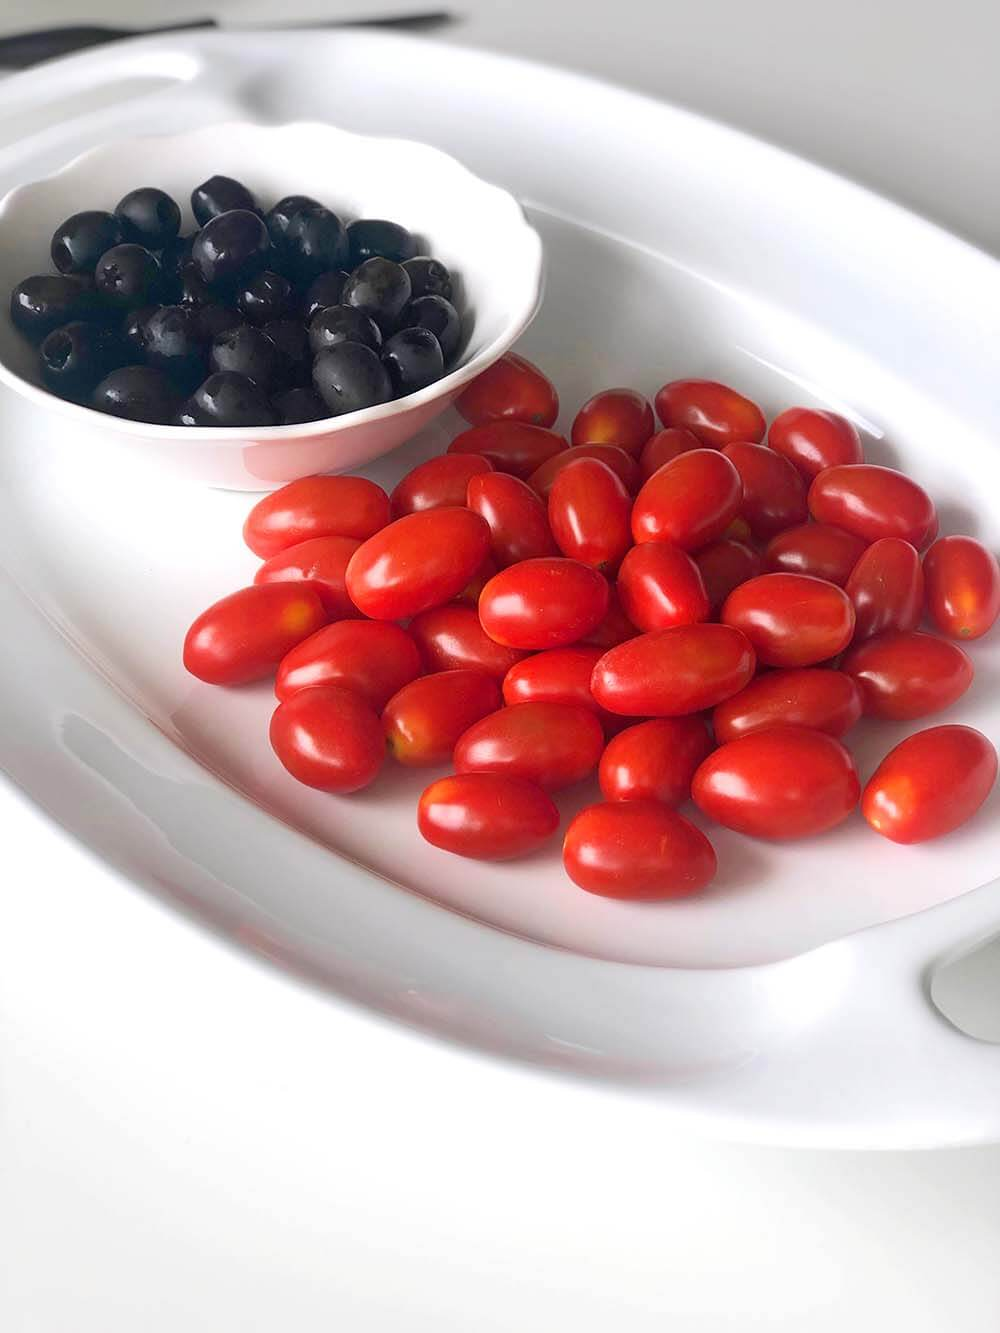 Grape tomatoes and black olives in white bowl on tray